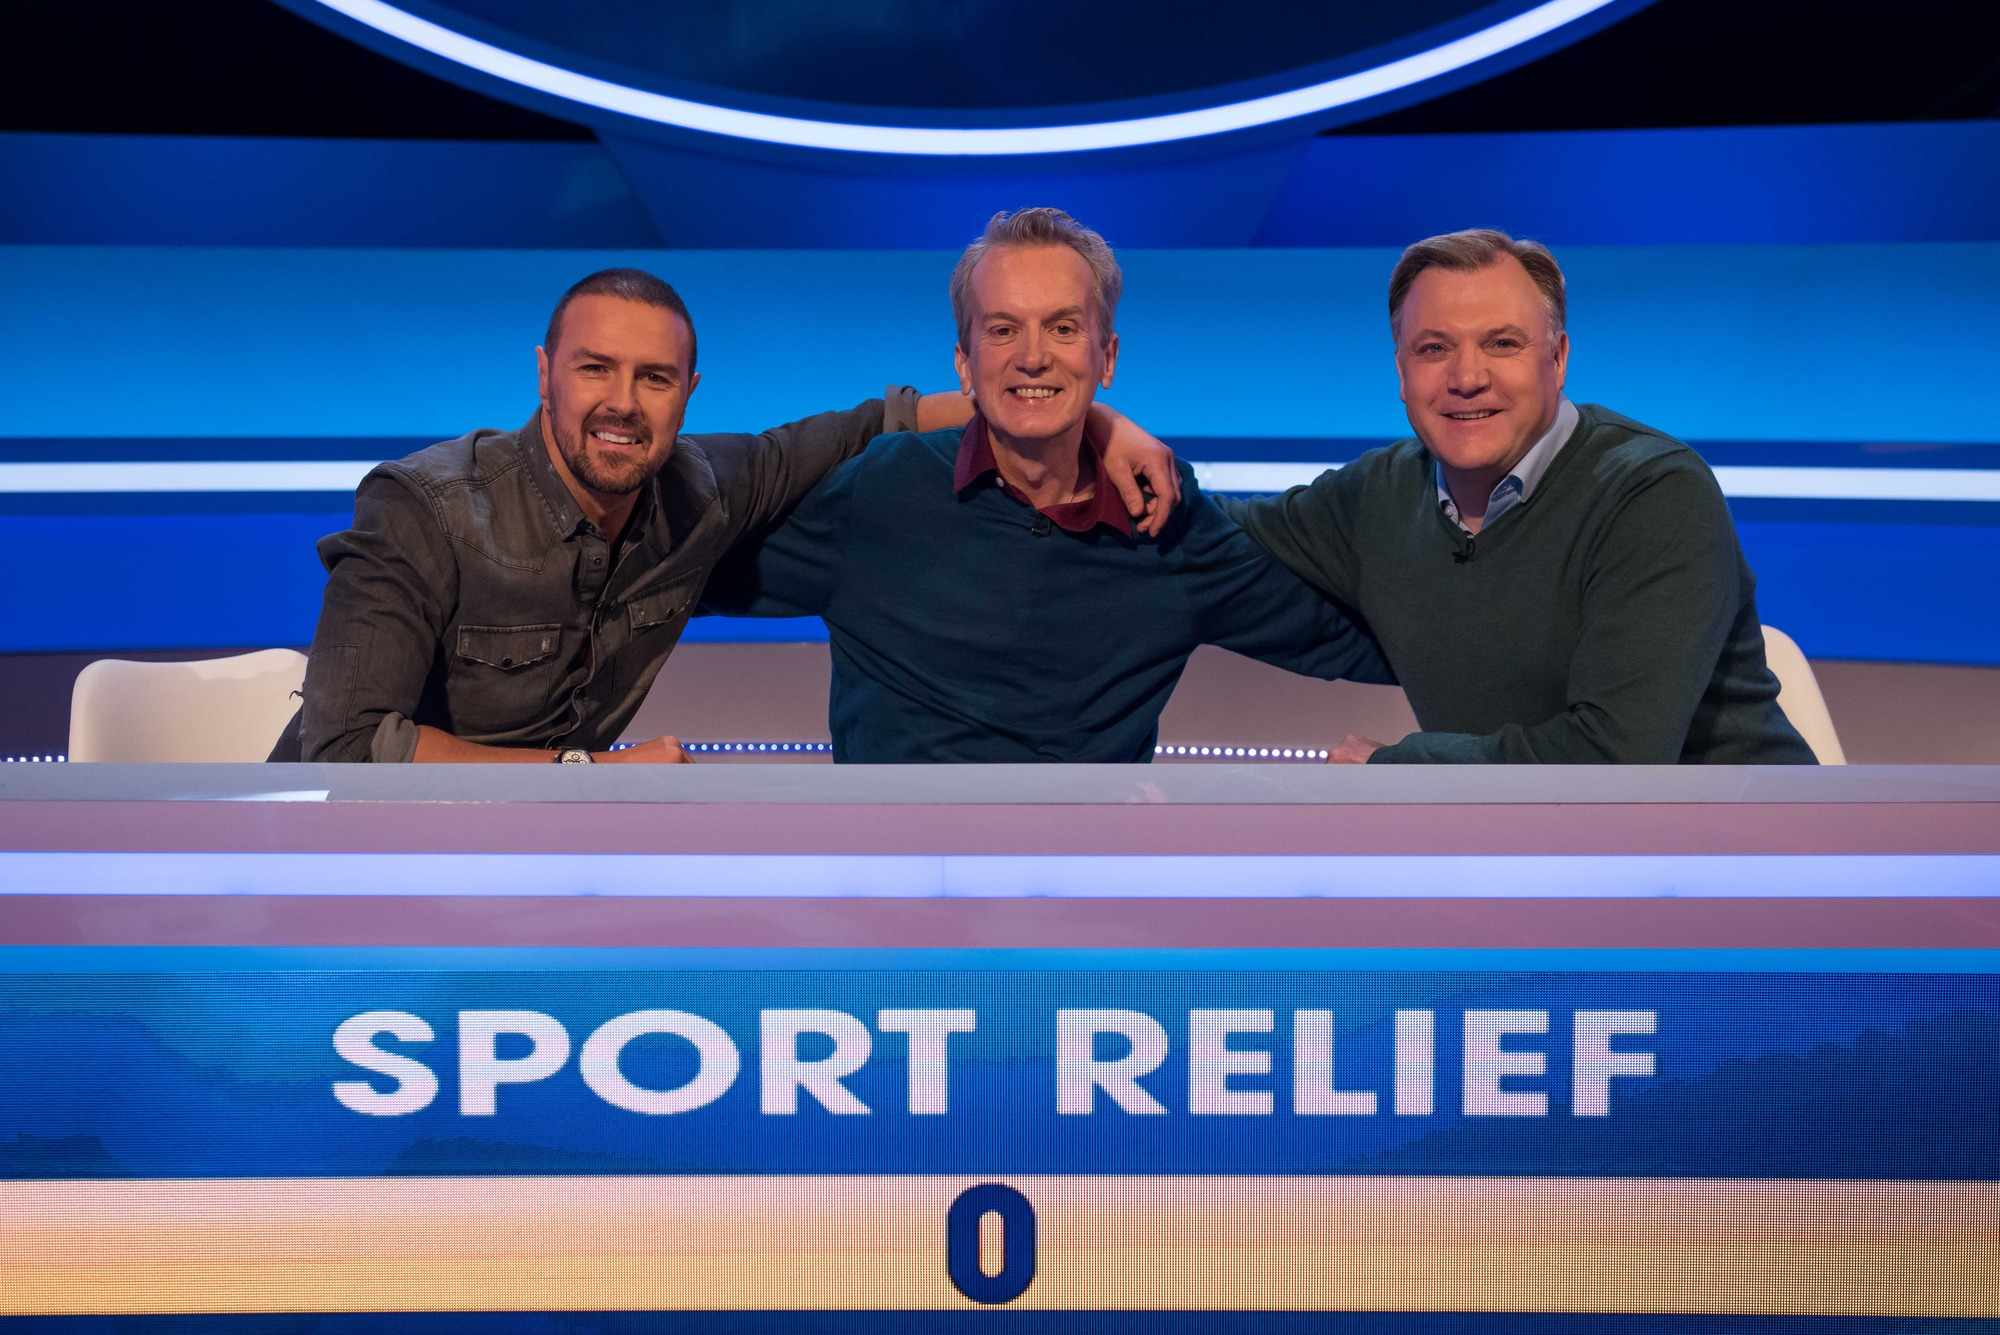 WARNING: Embargoed for publication until 00:00:01 on 13/03/2018 - Programme Name: Sport Relief 2018 - TX: 23/03/2018 - Episode: n/a (No. n/a) - Picture Shows: **Strictly Embargoed until 13/03/2018 00:00:01** Paddy McGuinness, Frank Skinner, Ed Balls - (C) BBC  - Photographer: James Stack